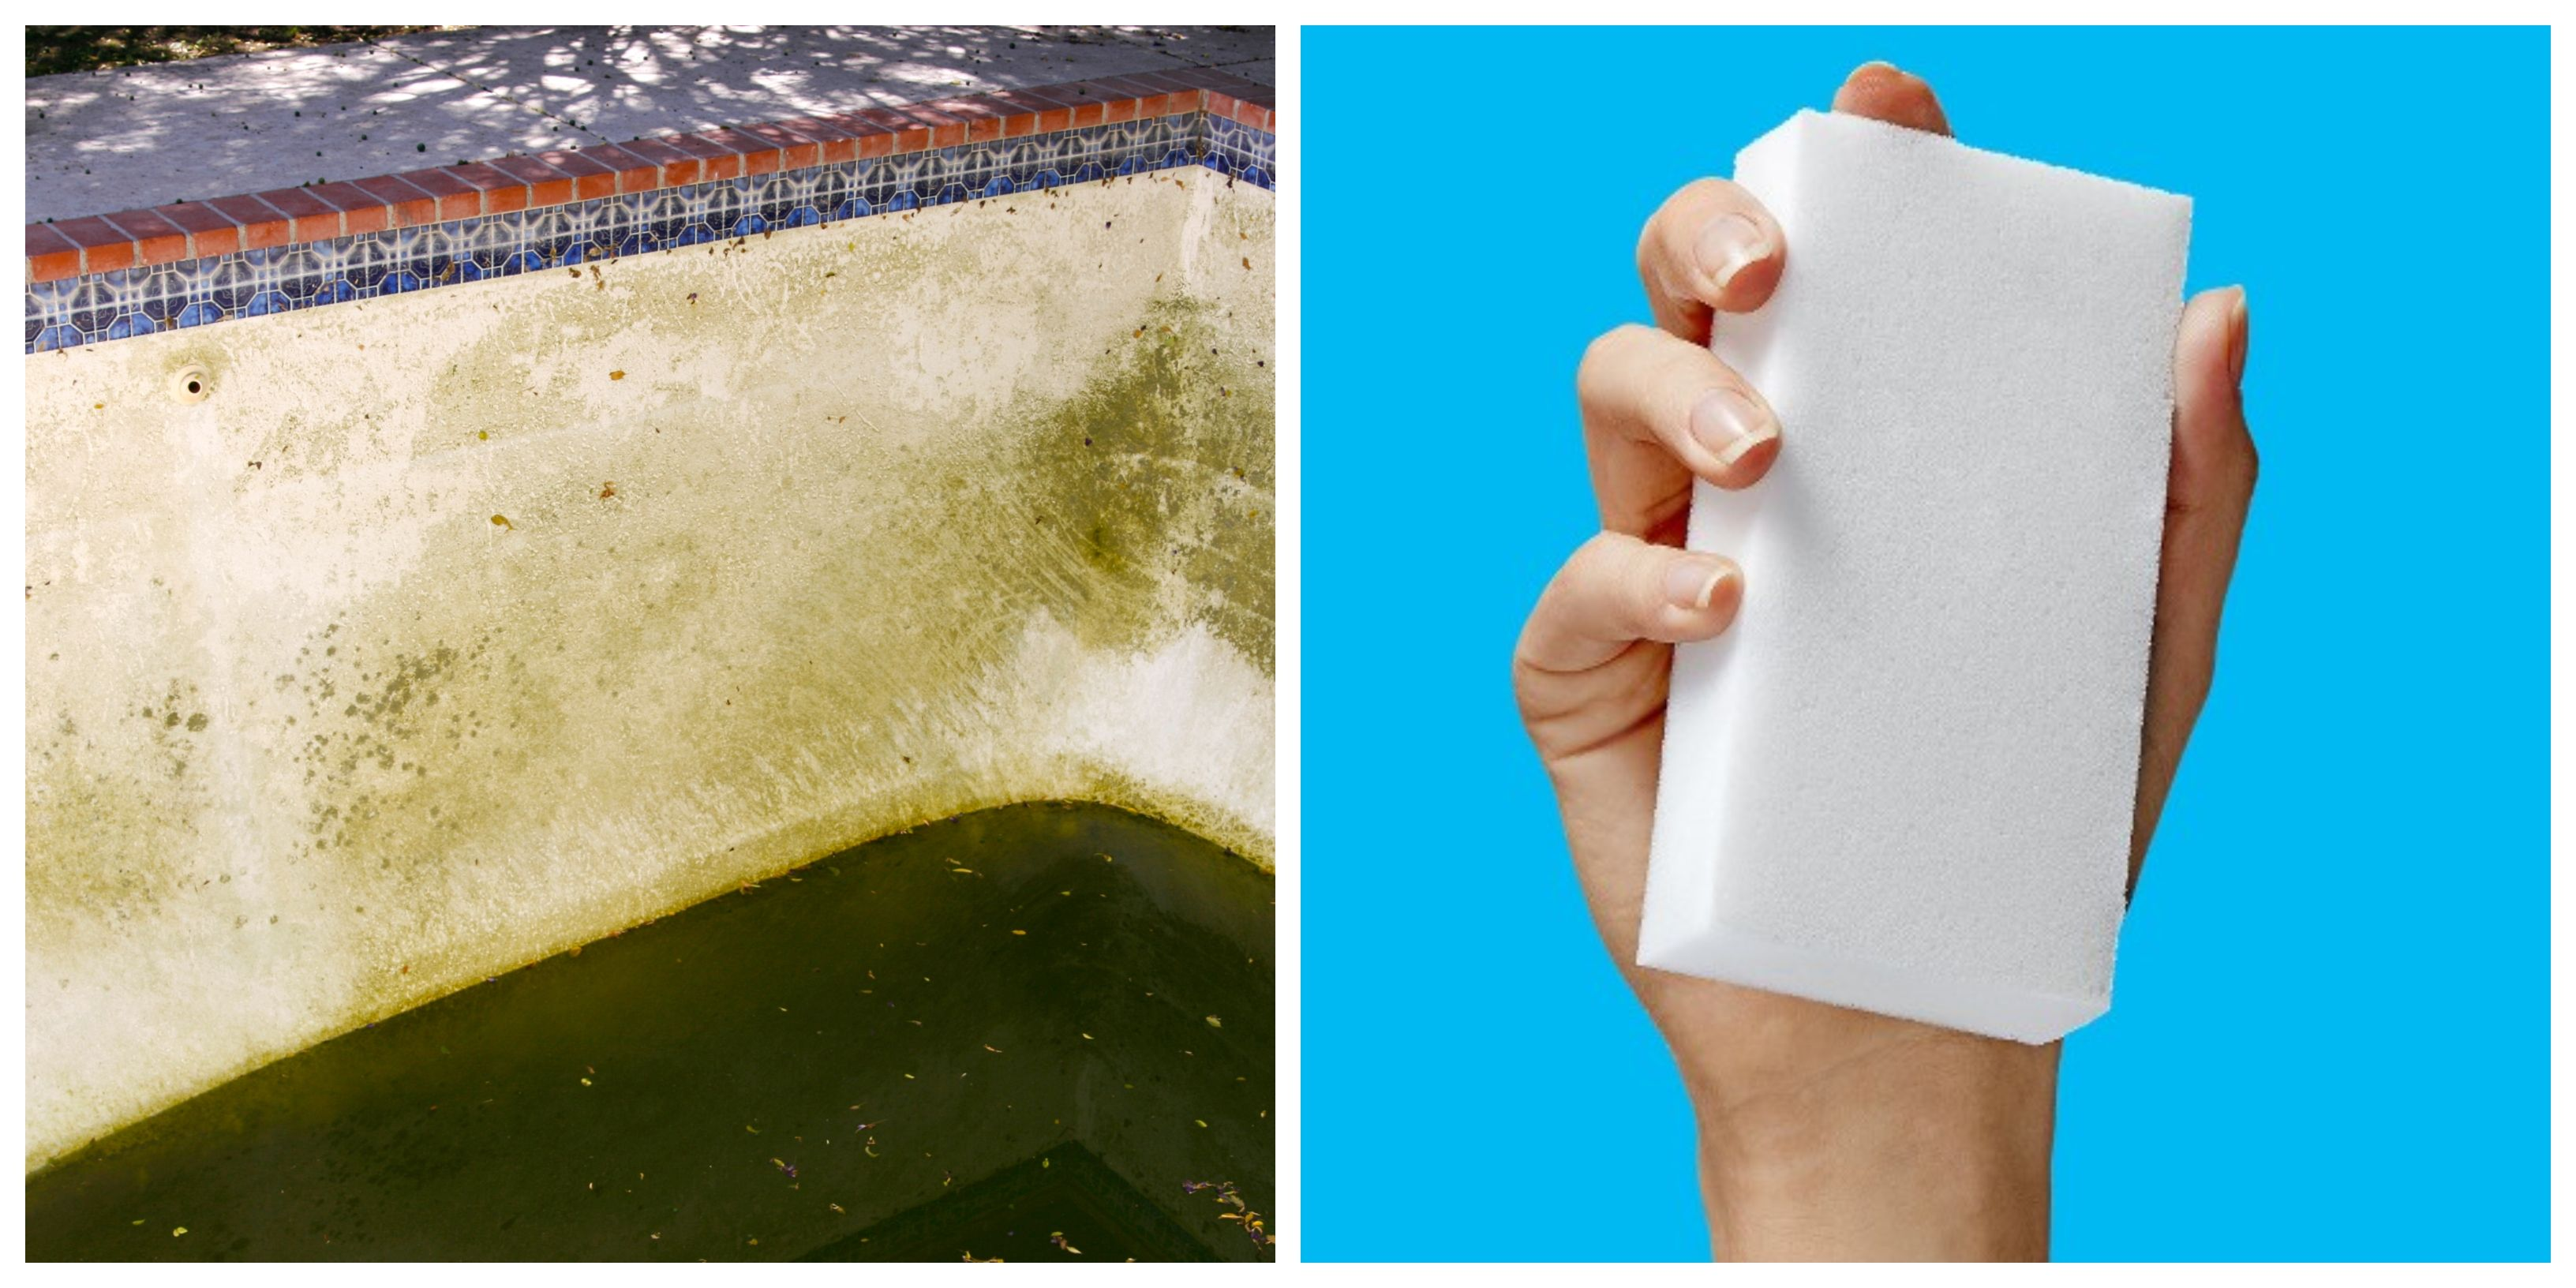 This Grandma Cleaned Her Slimy Green Pool In 24 Hours Using a Single Magic Eraser